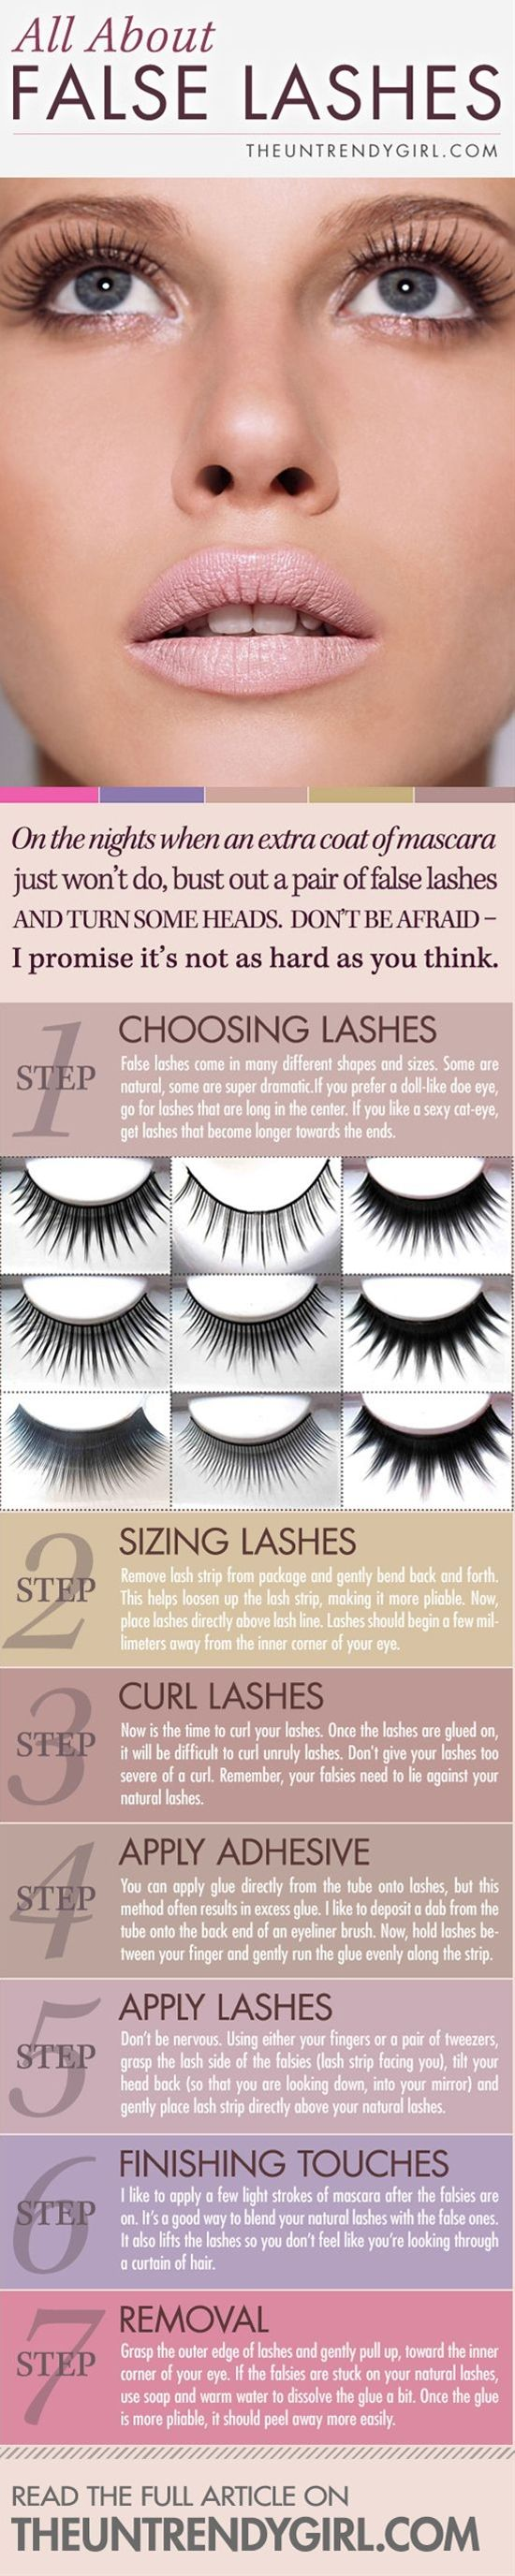 On the nights when an extra coat of mascara just won't do, bust out a pair of false lashes and turn some heads.